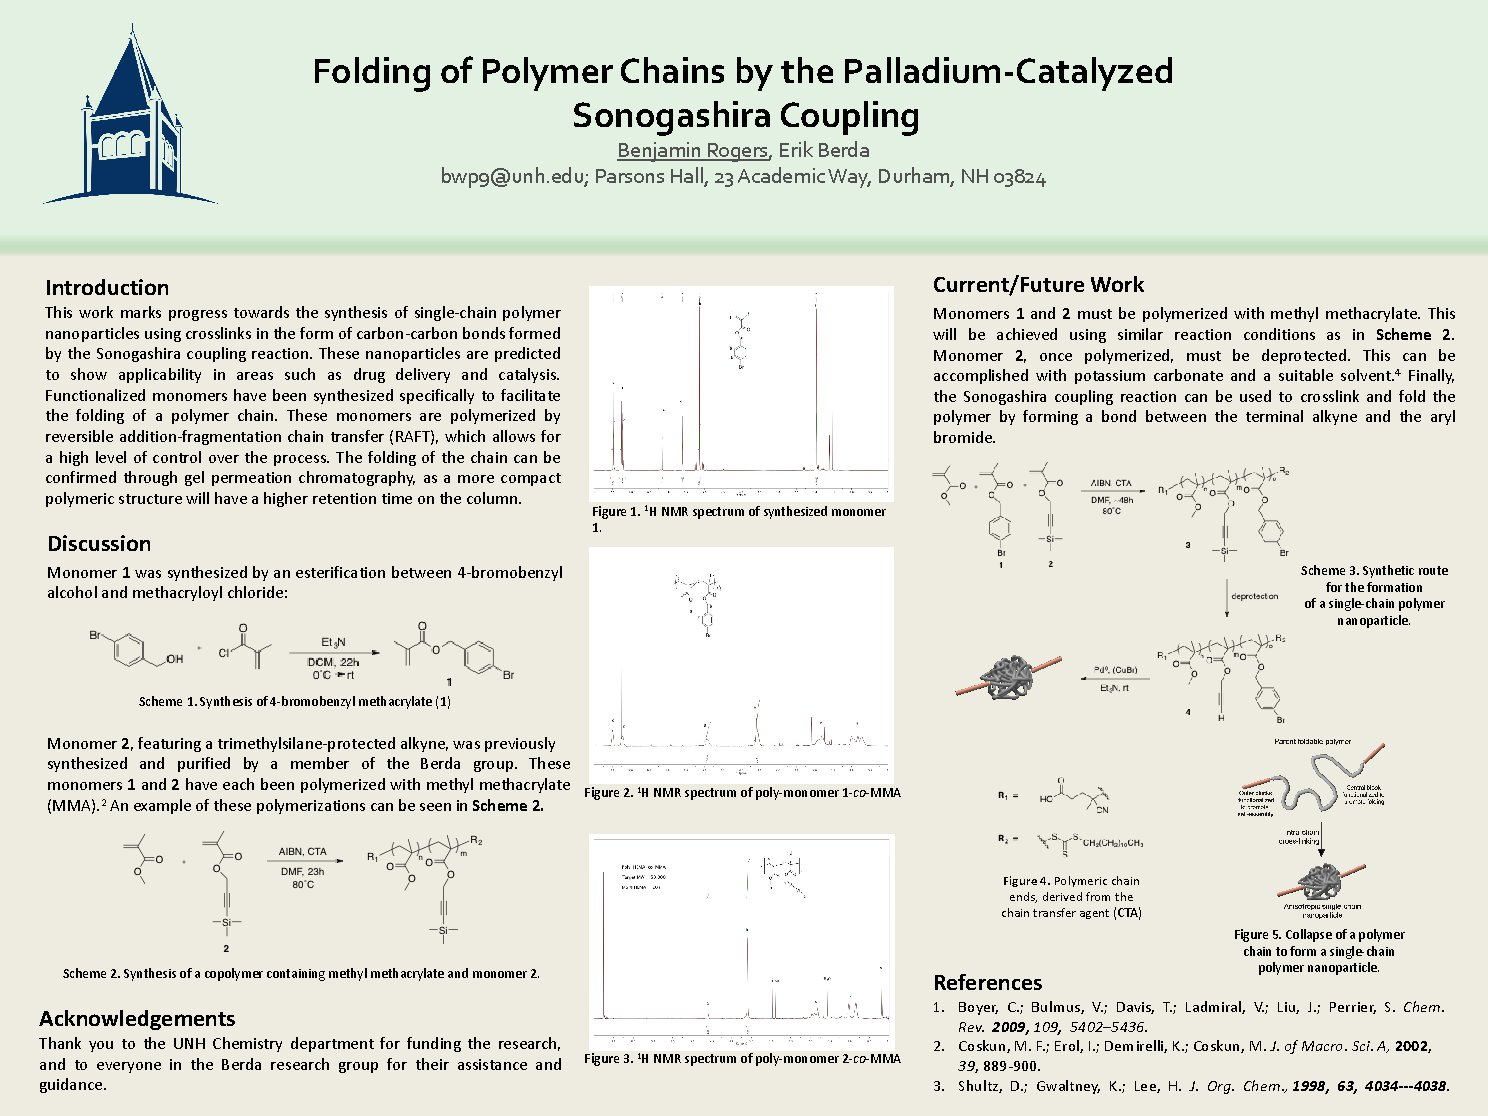 Folding Of Polymer Chains By The Palladium-Catalyzed Sonogashira Coupling by bwp9